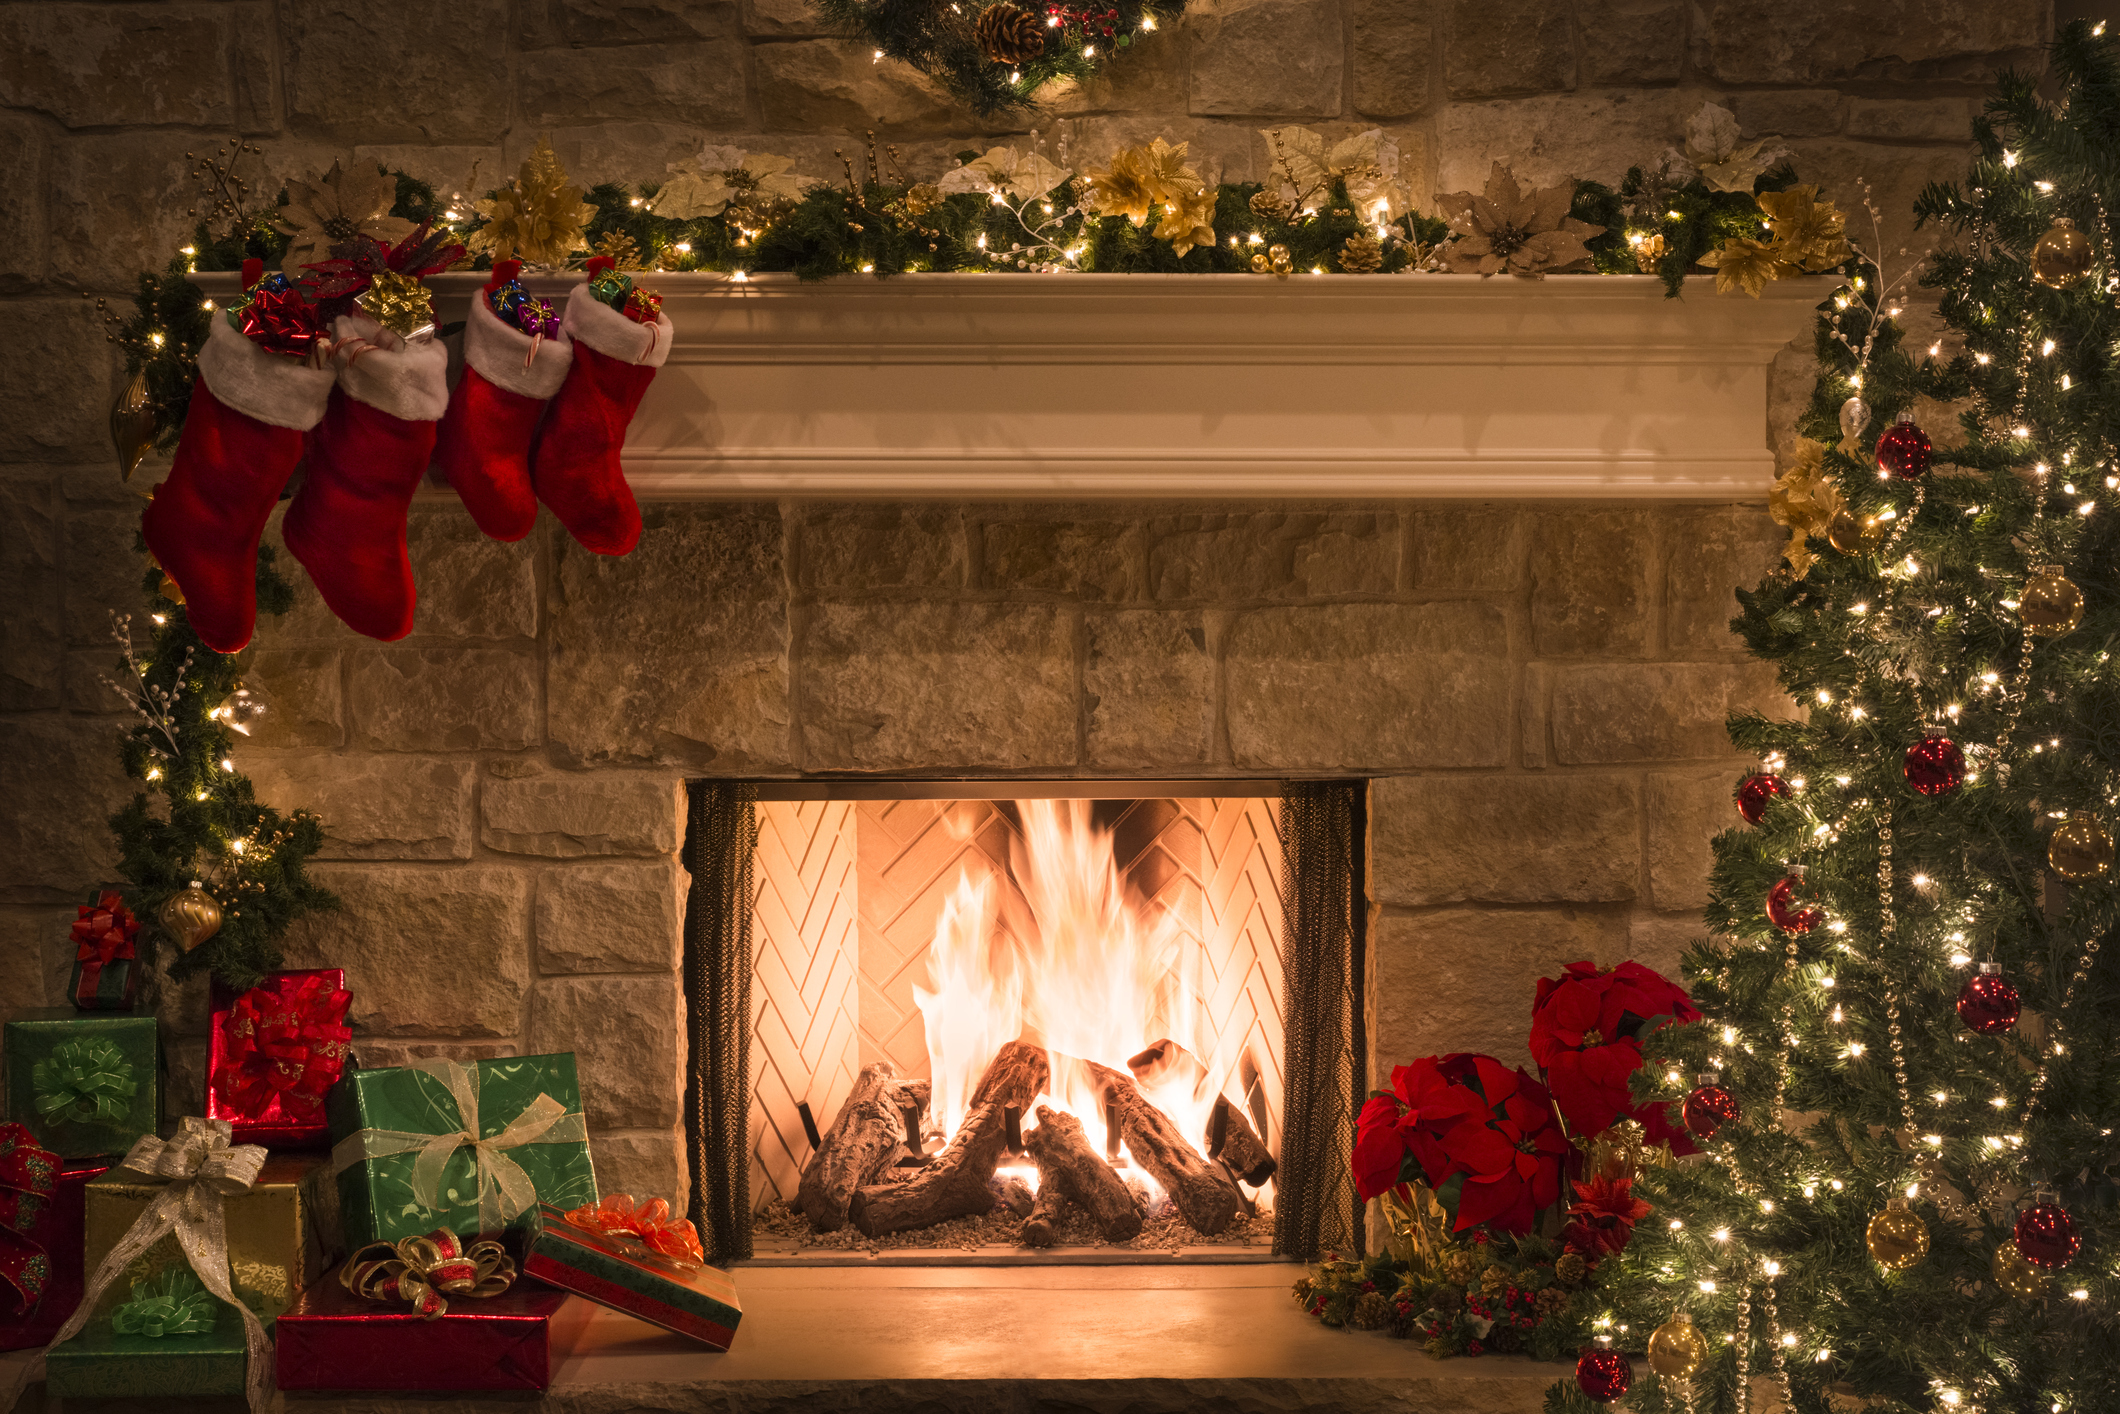 Christmas fireplace stockings ts tree copy space